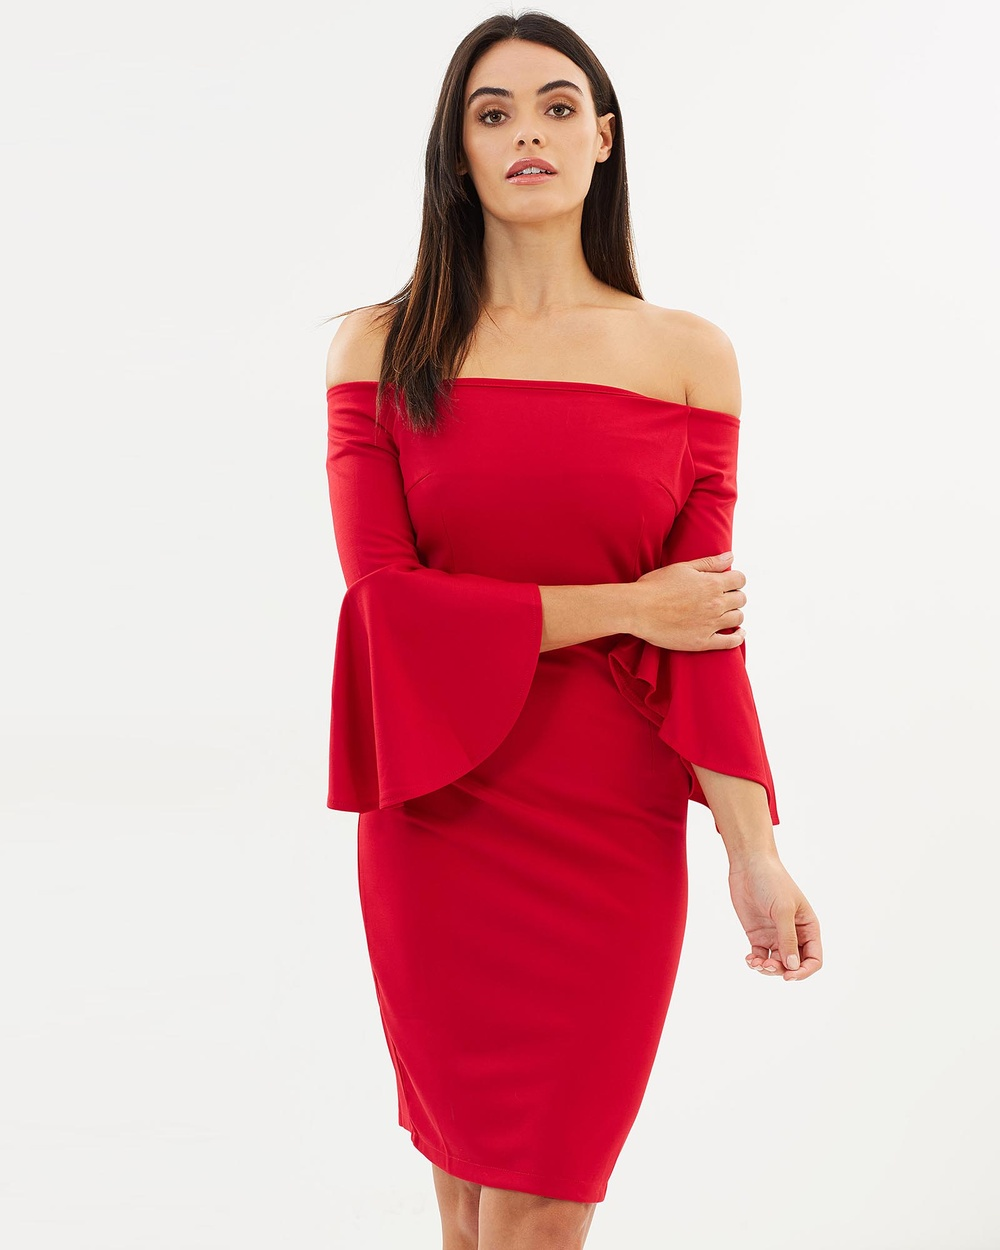 Jewels + Grace Alyson Dress Dresses Red Alyson Dress